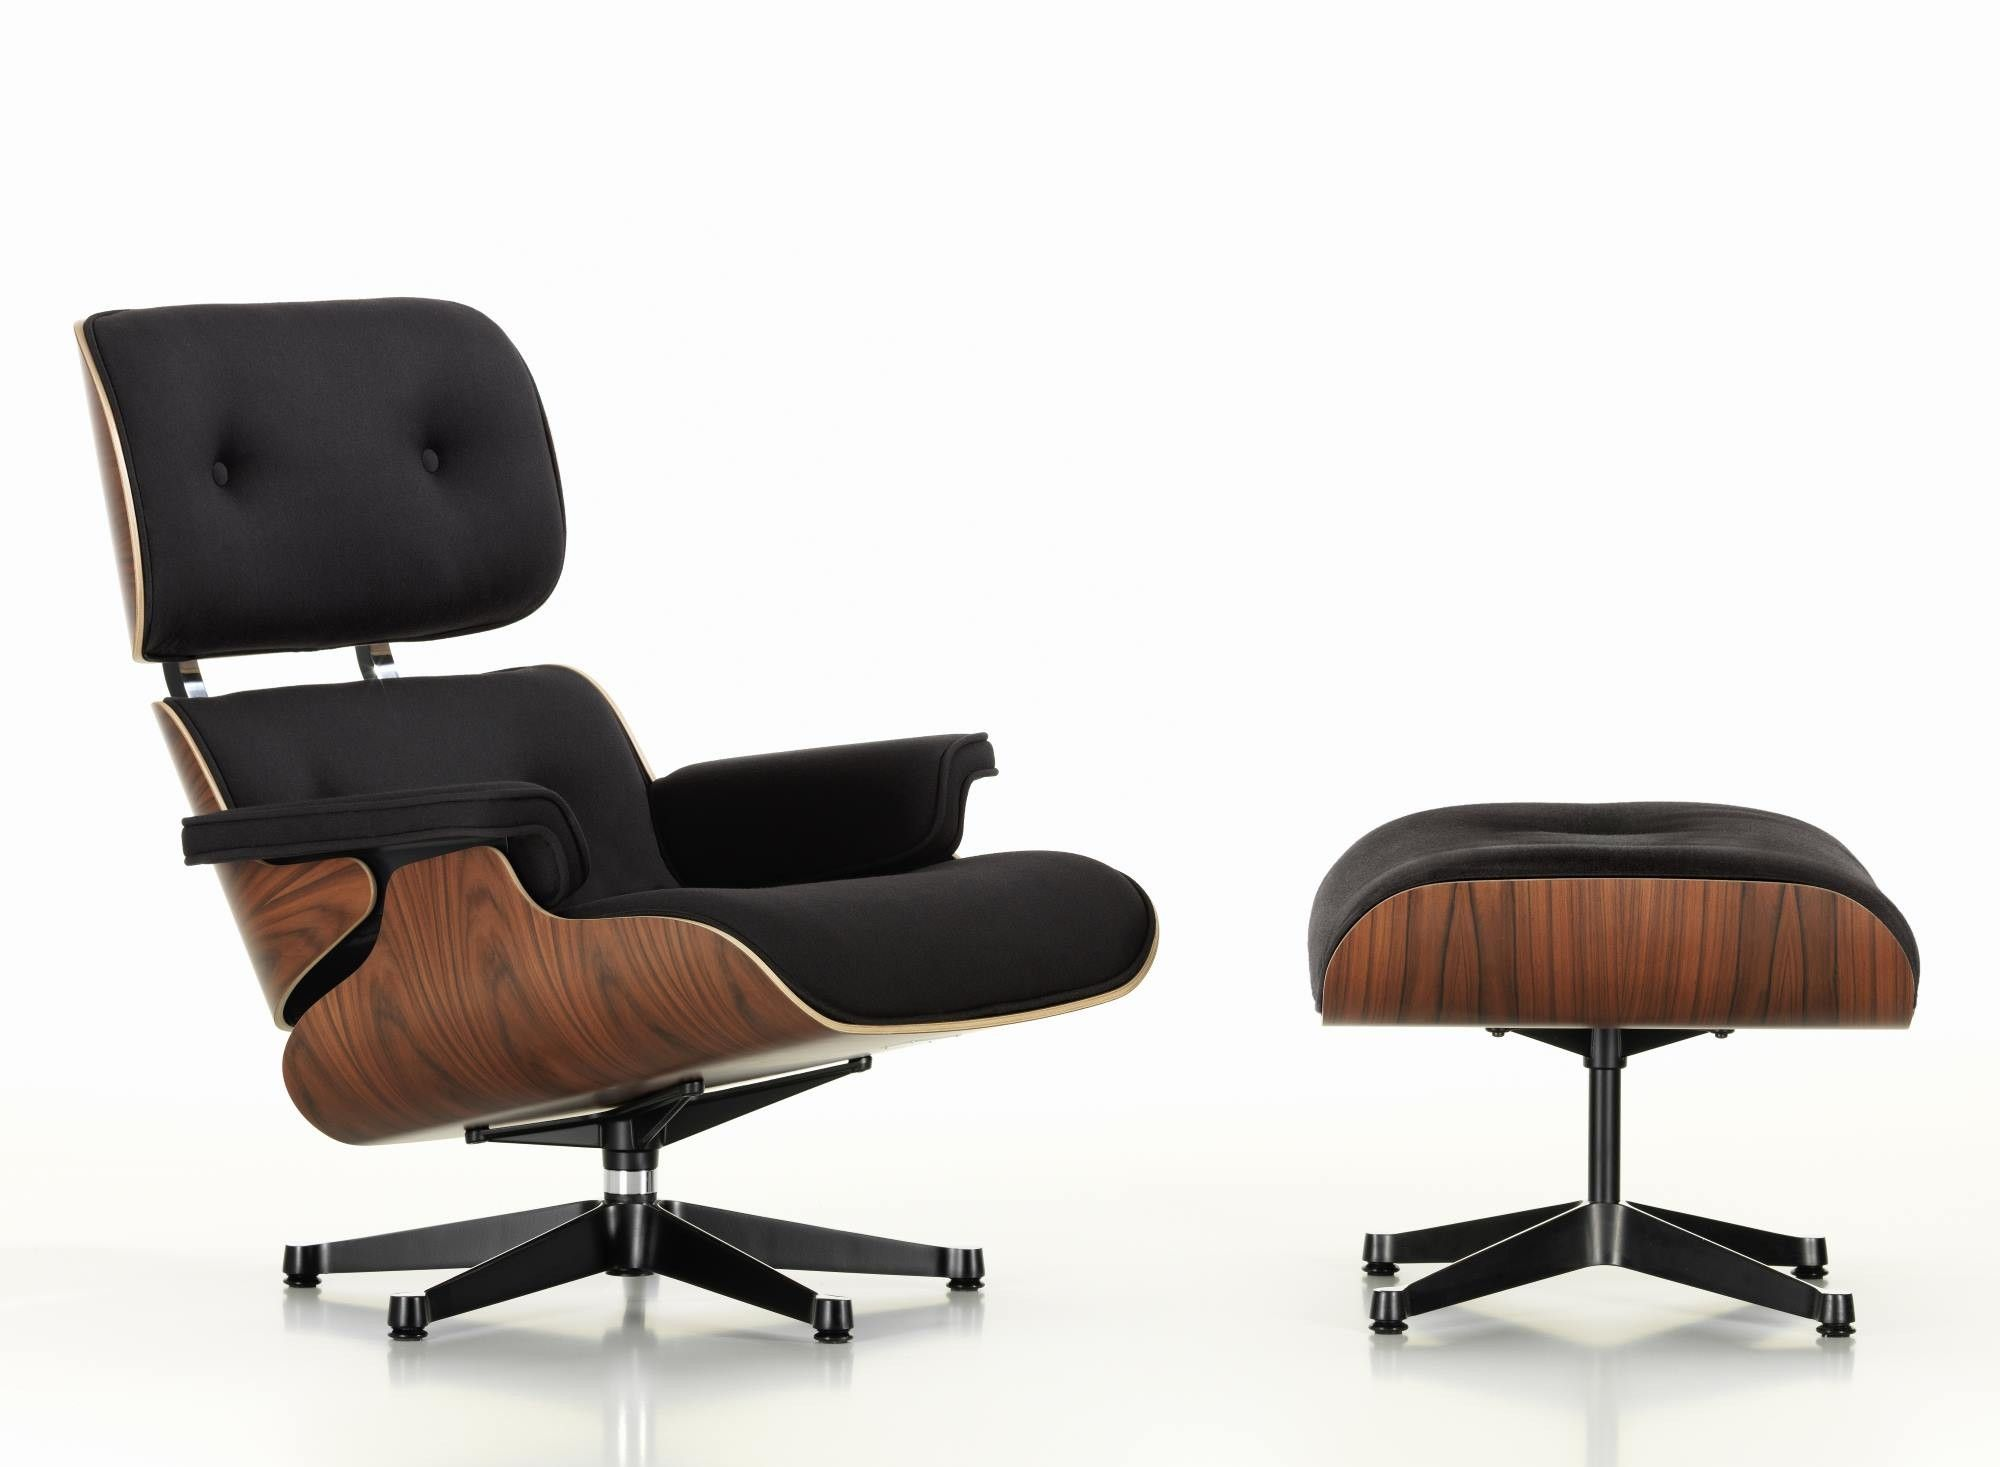 Vitra Eames Lounge Chair Twill Home Stories 2016